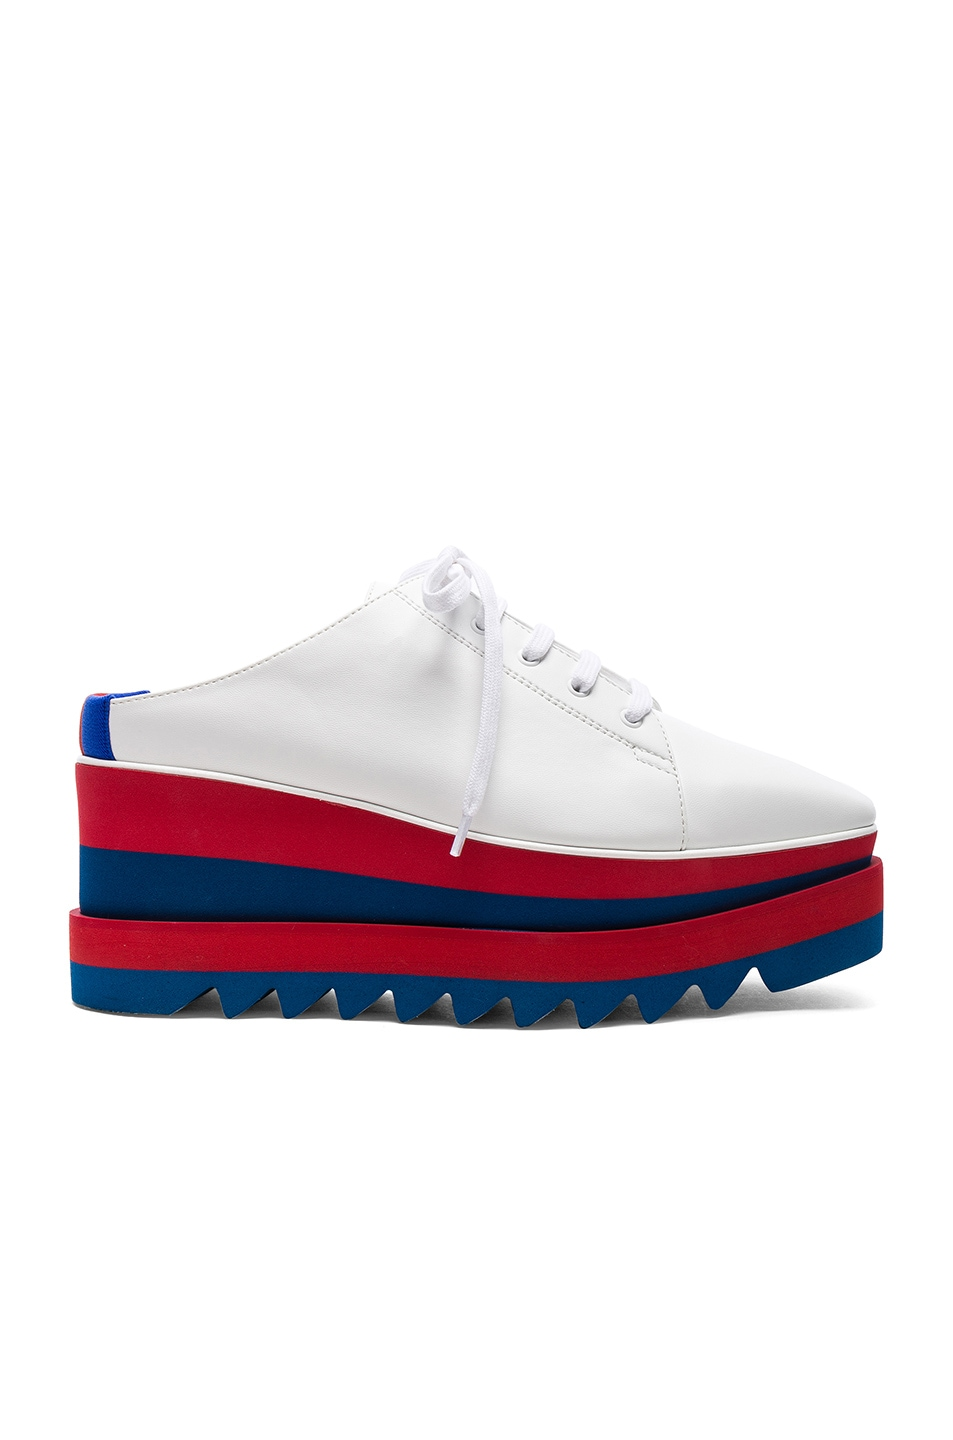 Image 1 of Stella McCartney Platform Wedge Oxford Mules in White, Red & Blue